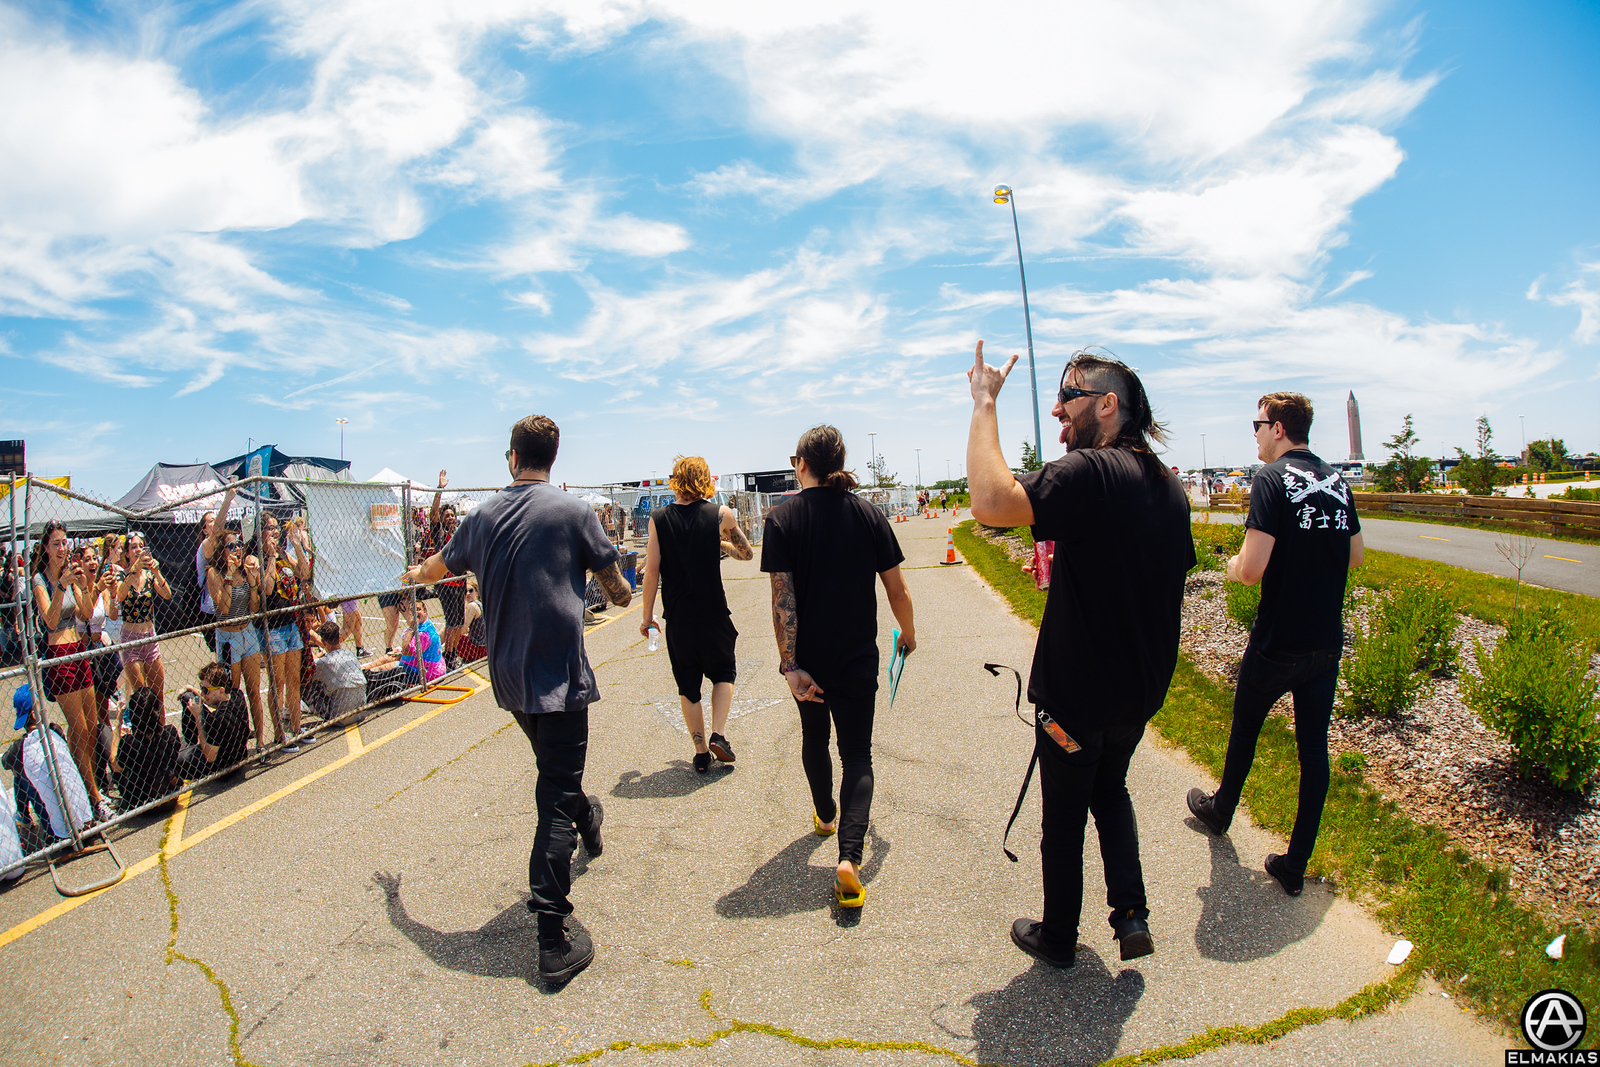 Of Mice & Men headed back to the bus